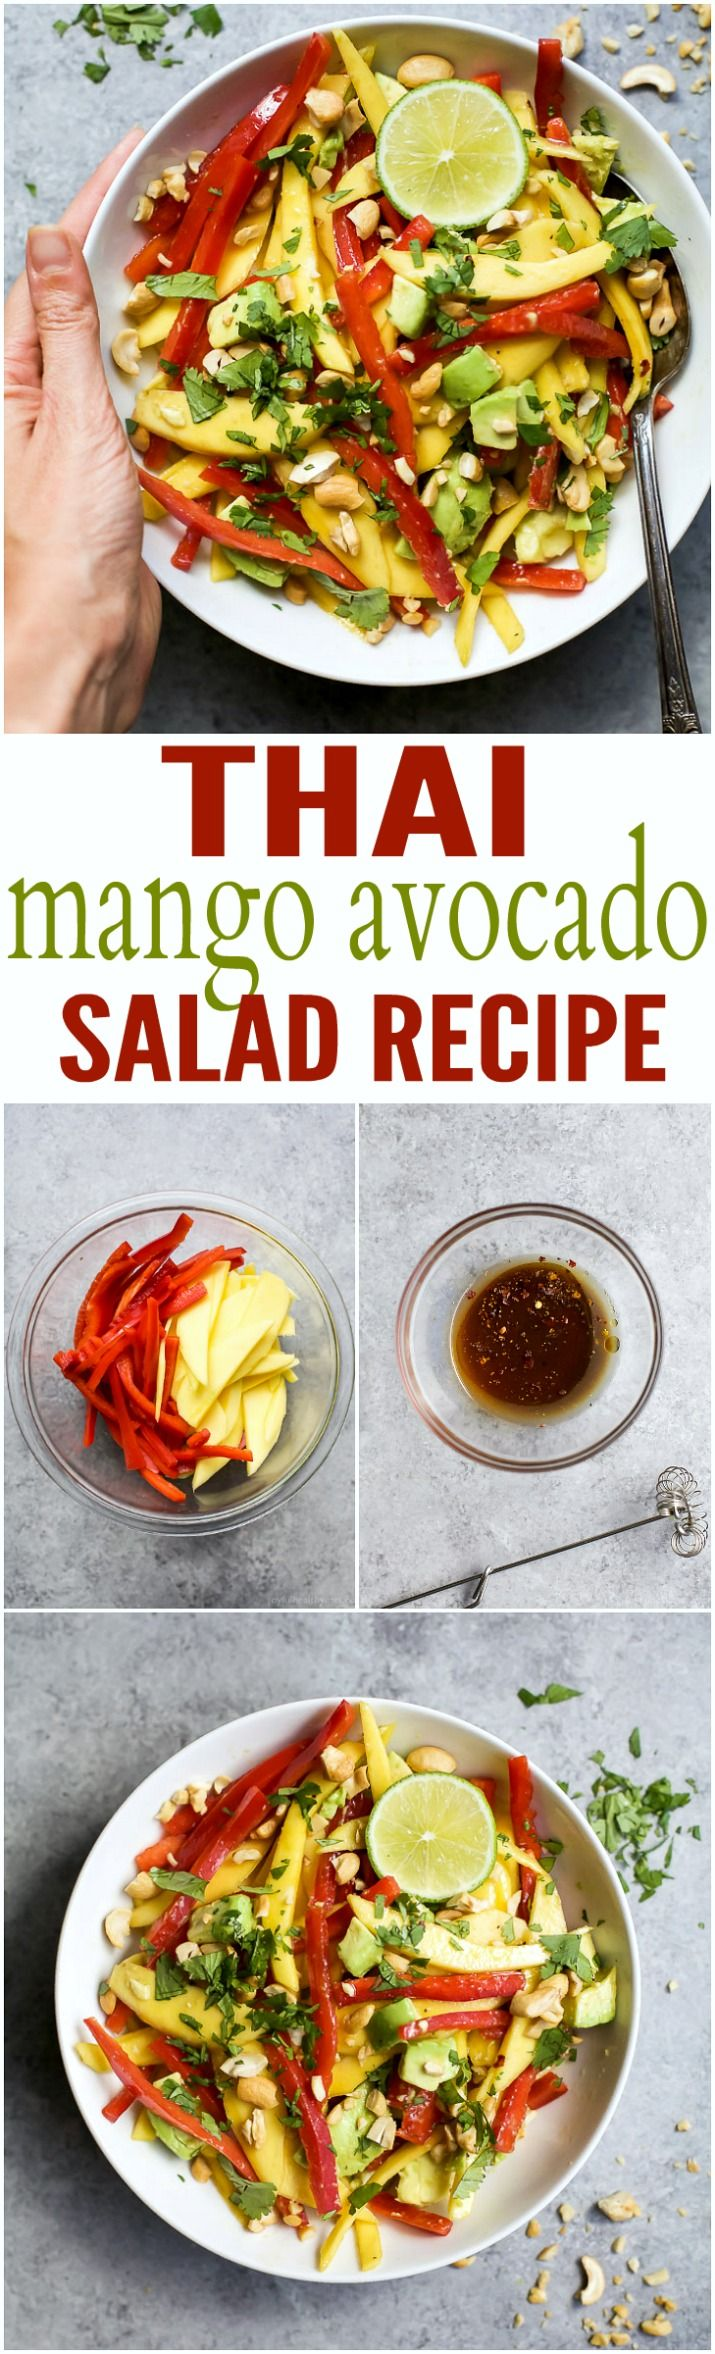 THAI MANGO AVOCADO SALAD - an easy, light, gluten free salad perfect for the summer! Filled with fresh mango, red pepper, avocado, and a light sesame vinaigrette to bring everything together!